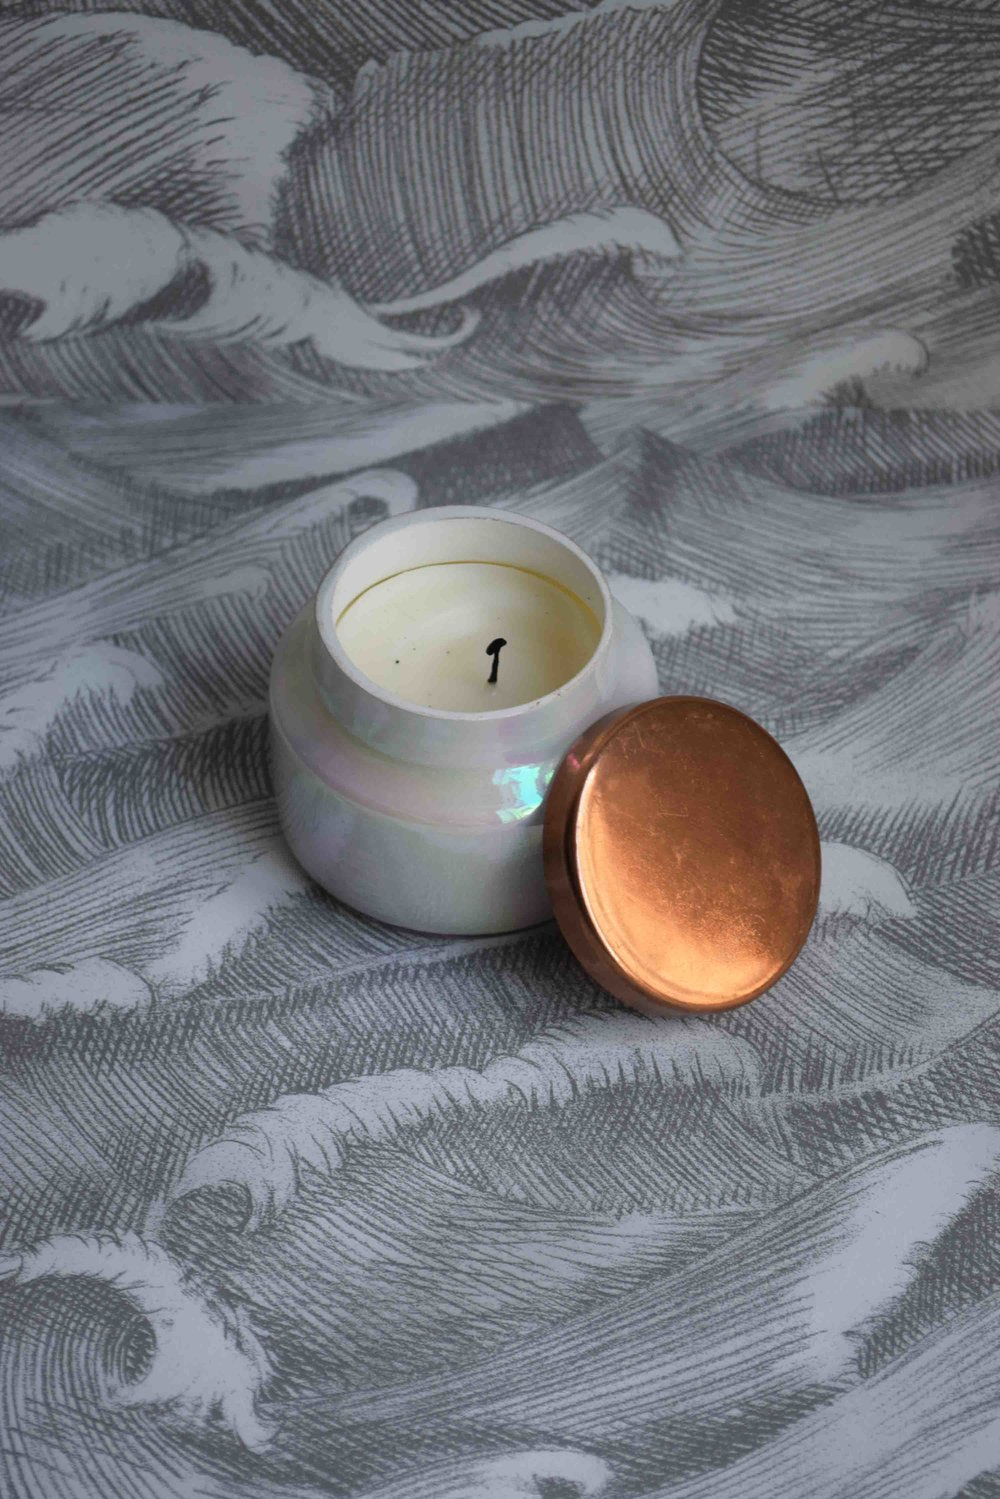 Scented Candle from Anthropoloie - ©Detail Movement